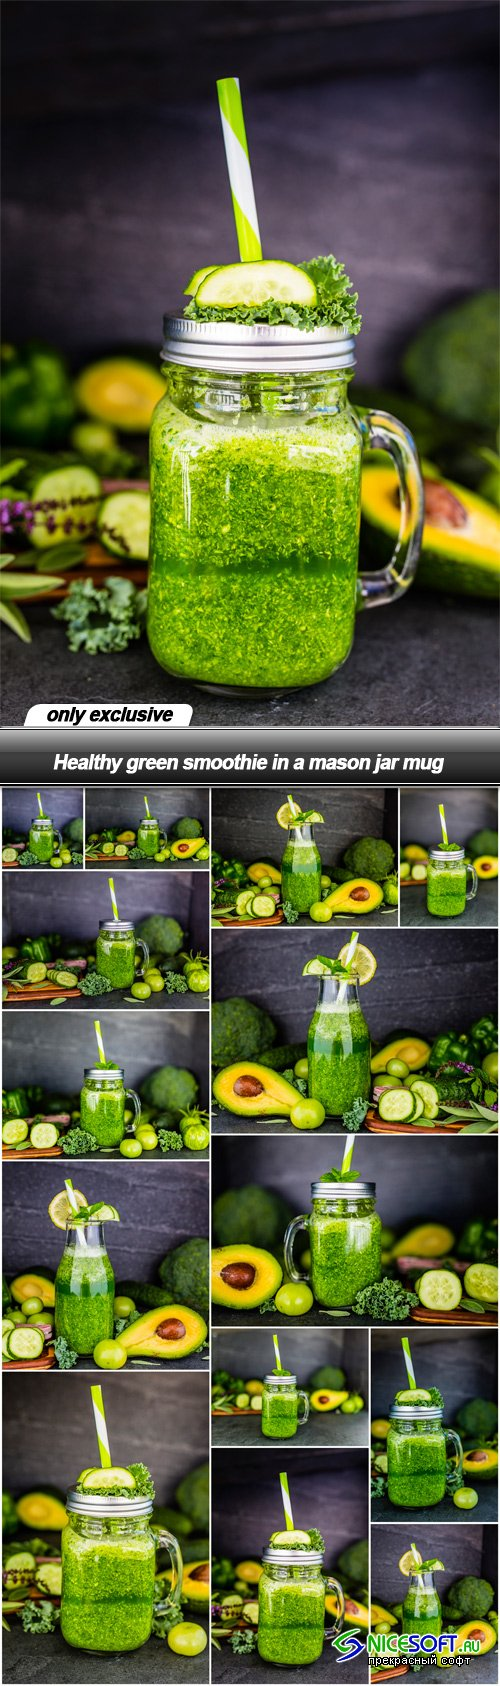 Healthy green smoothie in a mason jar mug